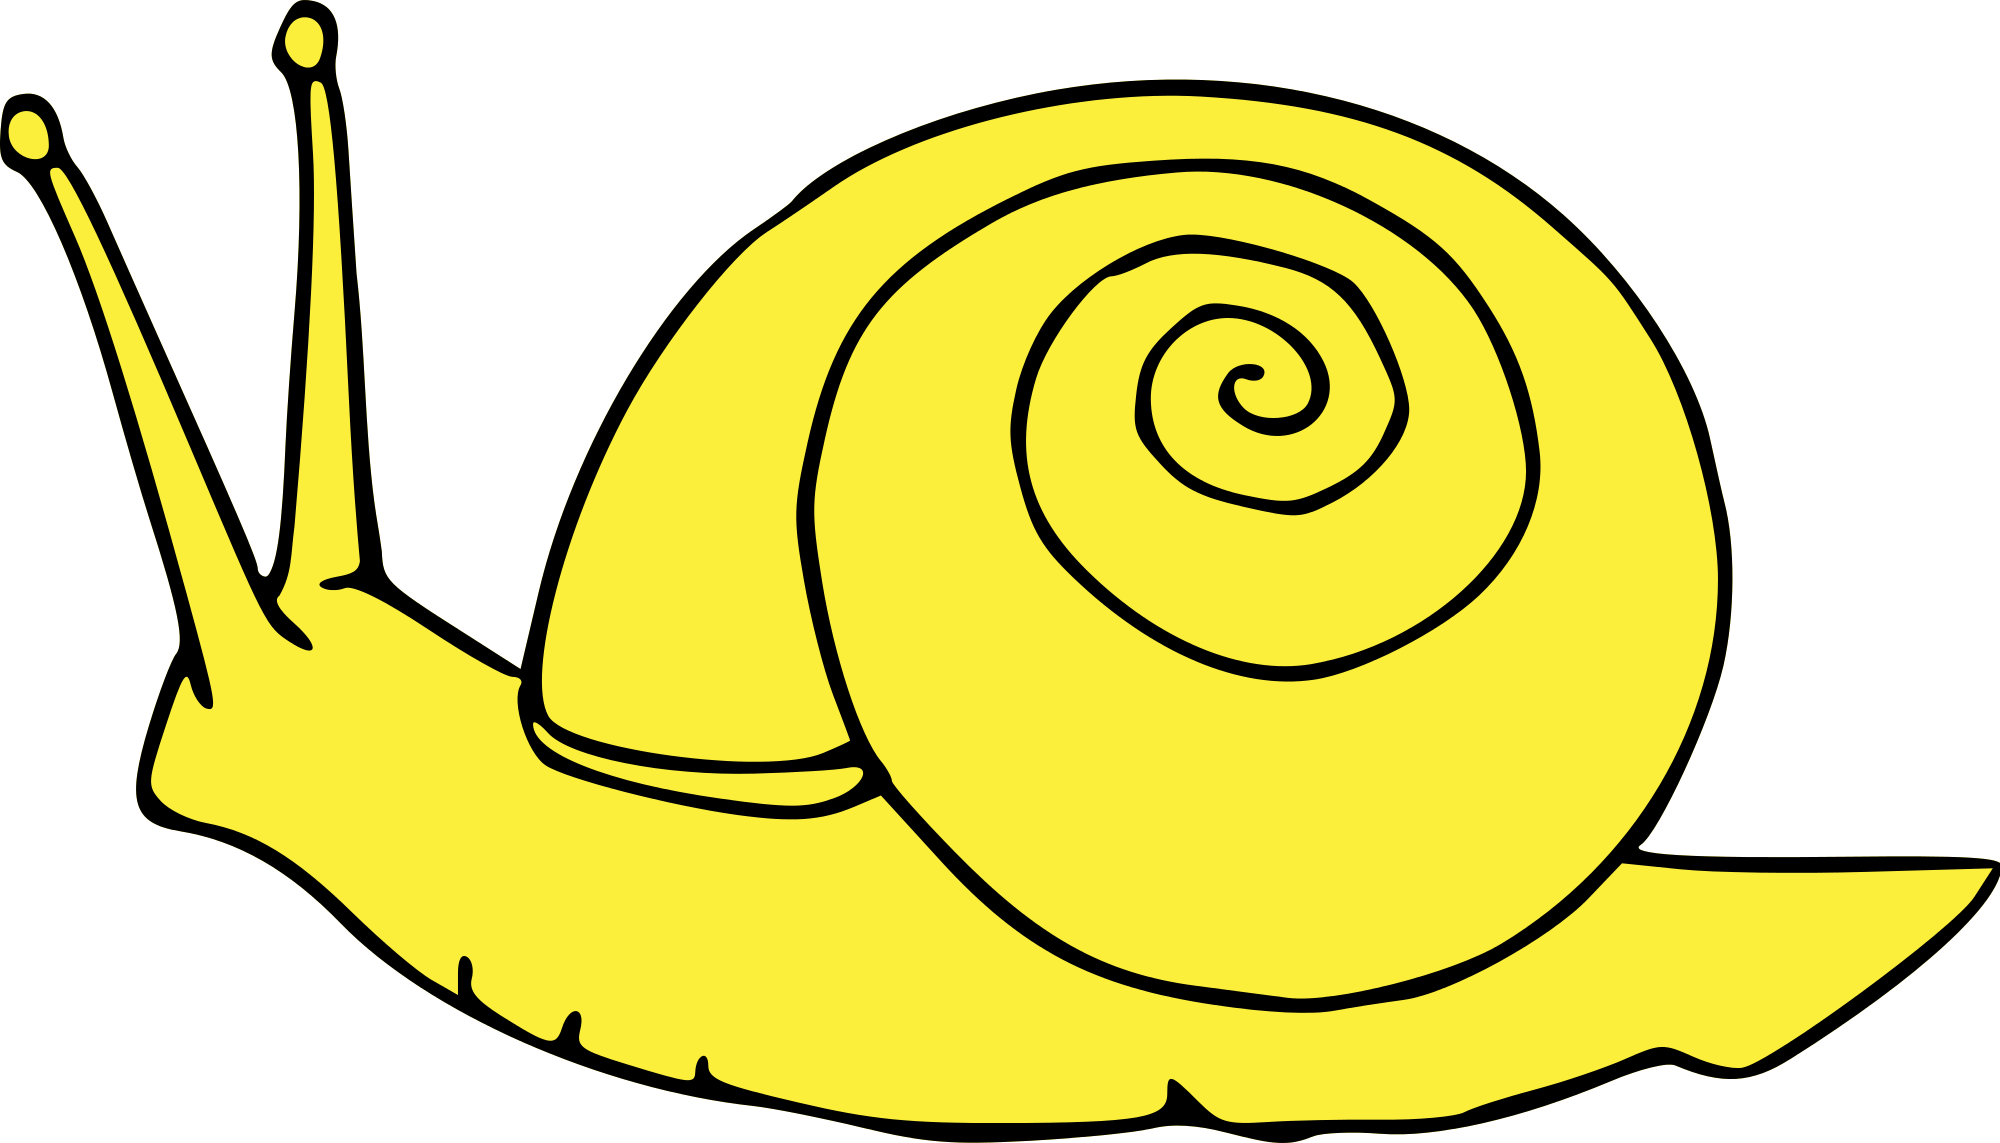 Snail graphic vector png. File escargot svg wikimedia